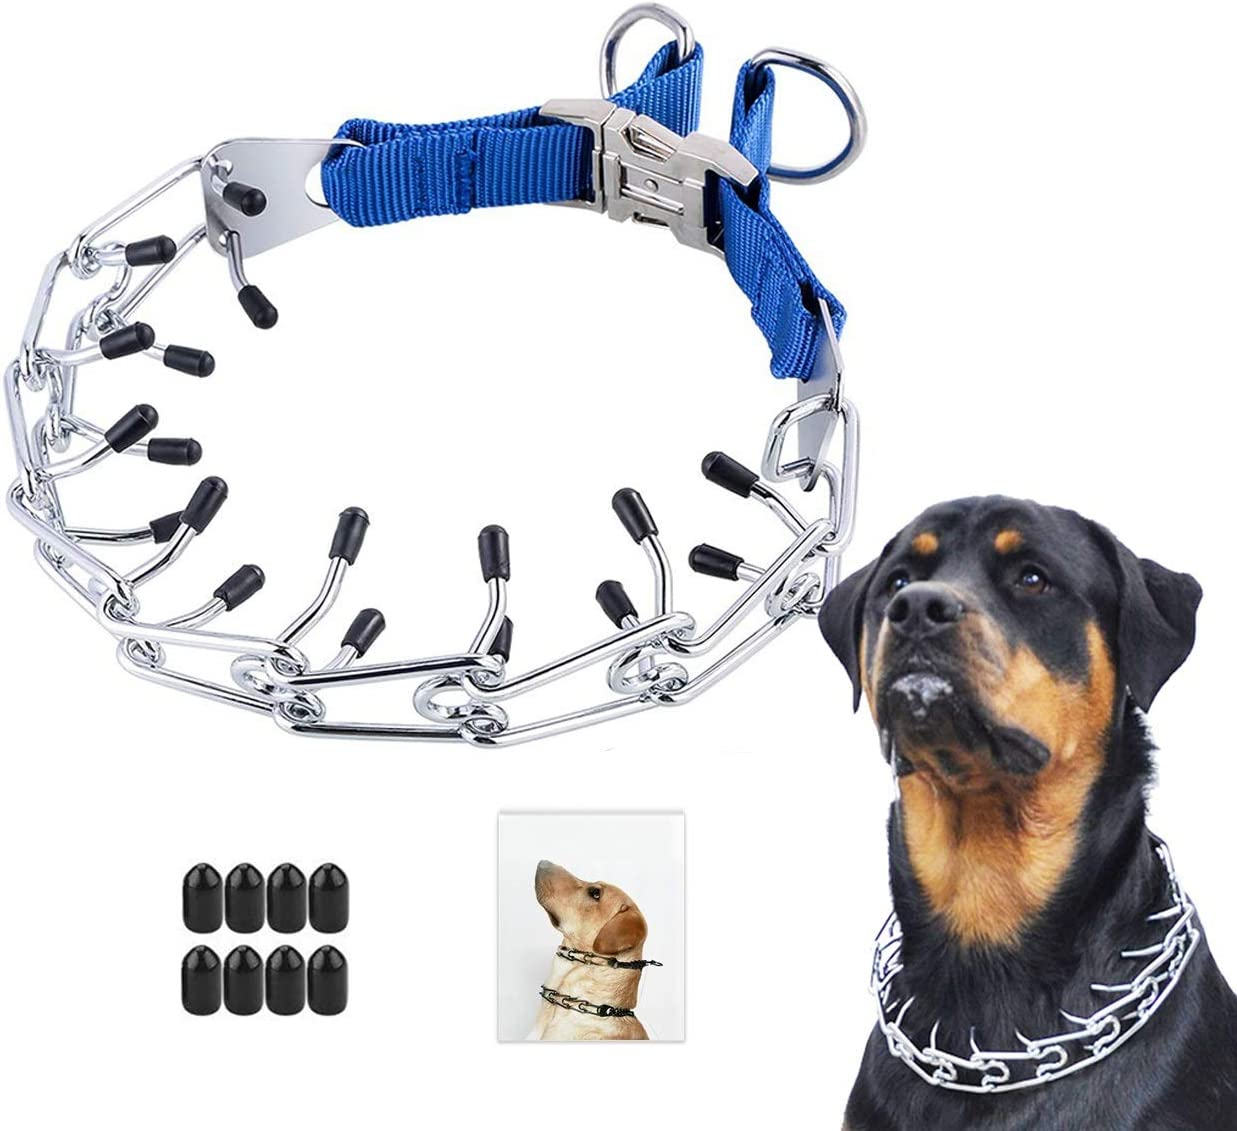 Heavy Duty Leash for Medium Large Dogs Choke Pinch Training Collar 3.5 mm x 21.6 Adjustable Links with Comfort Rubber Tips Companet Dog Prong Collar with Protector